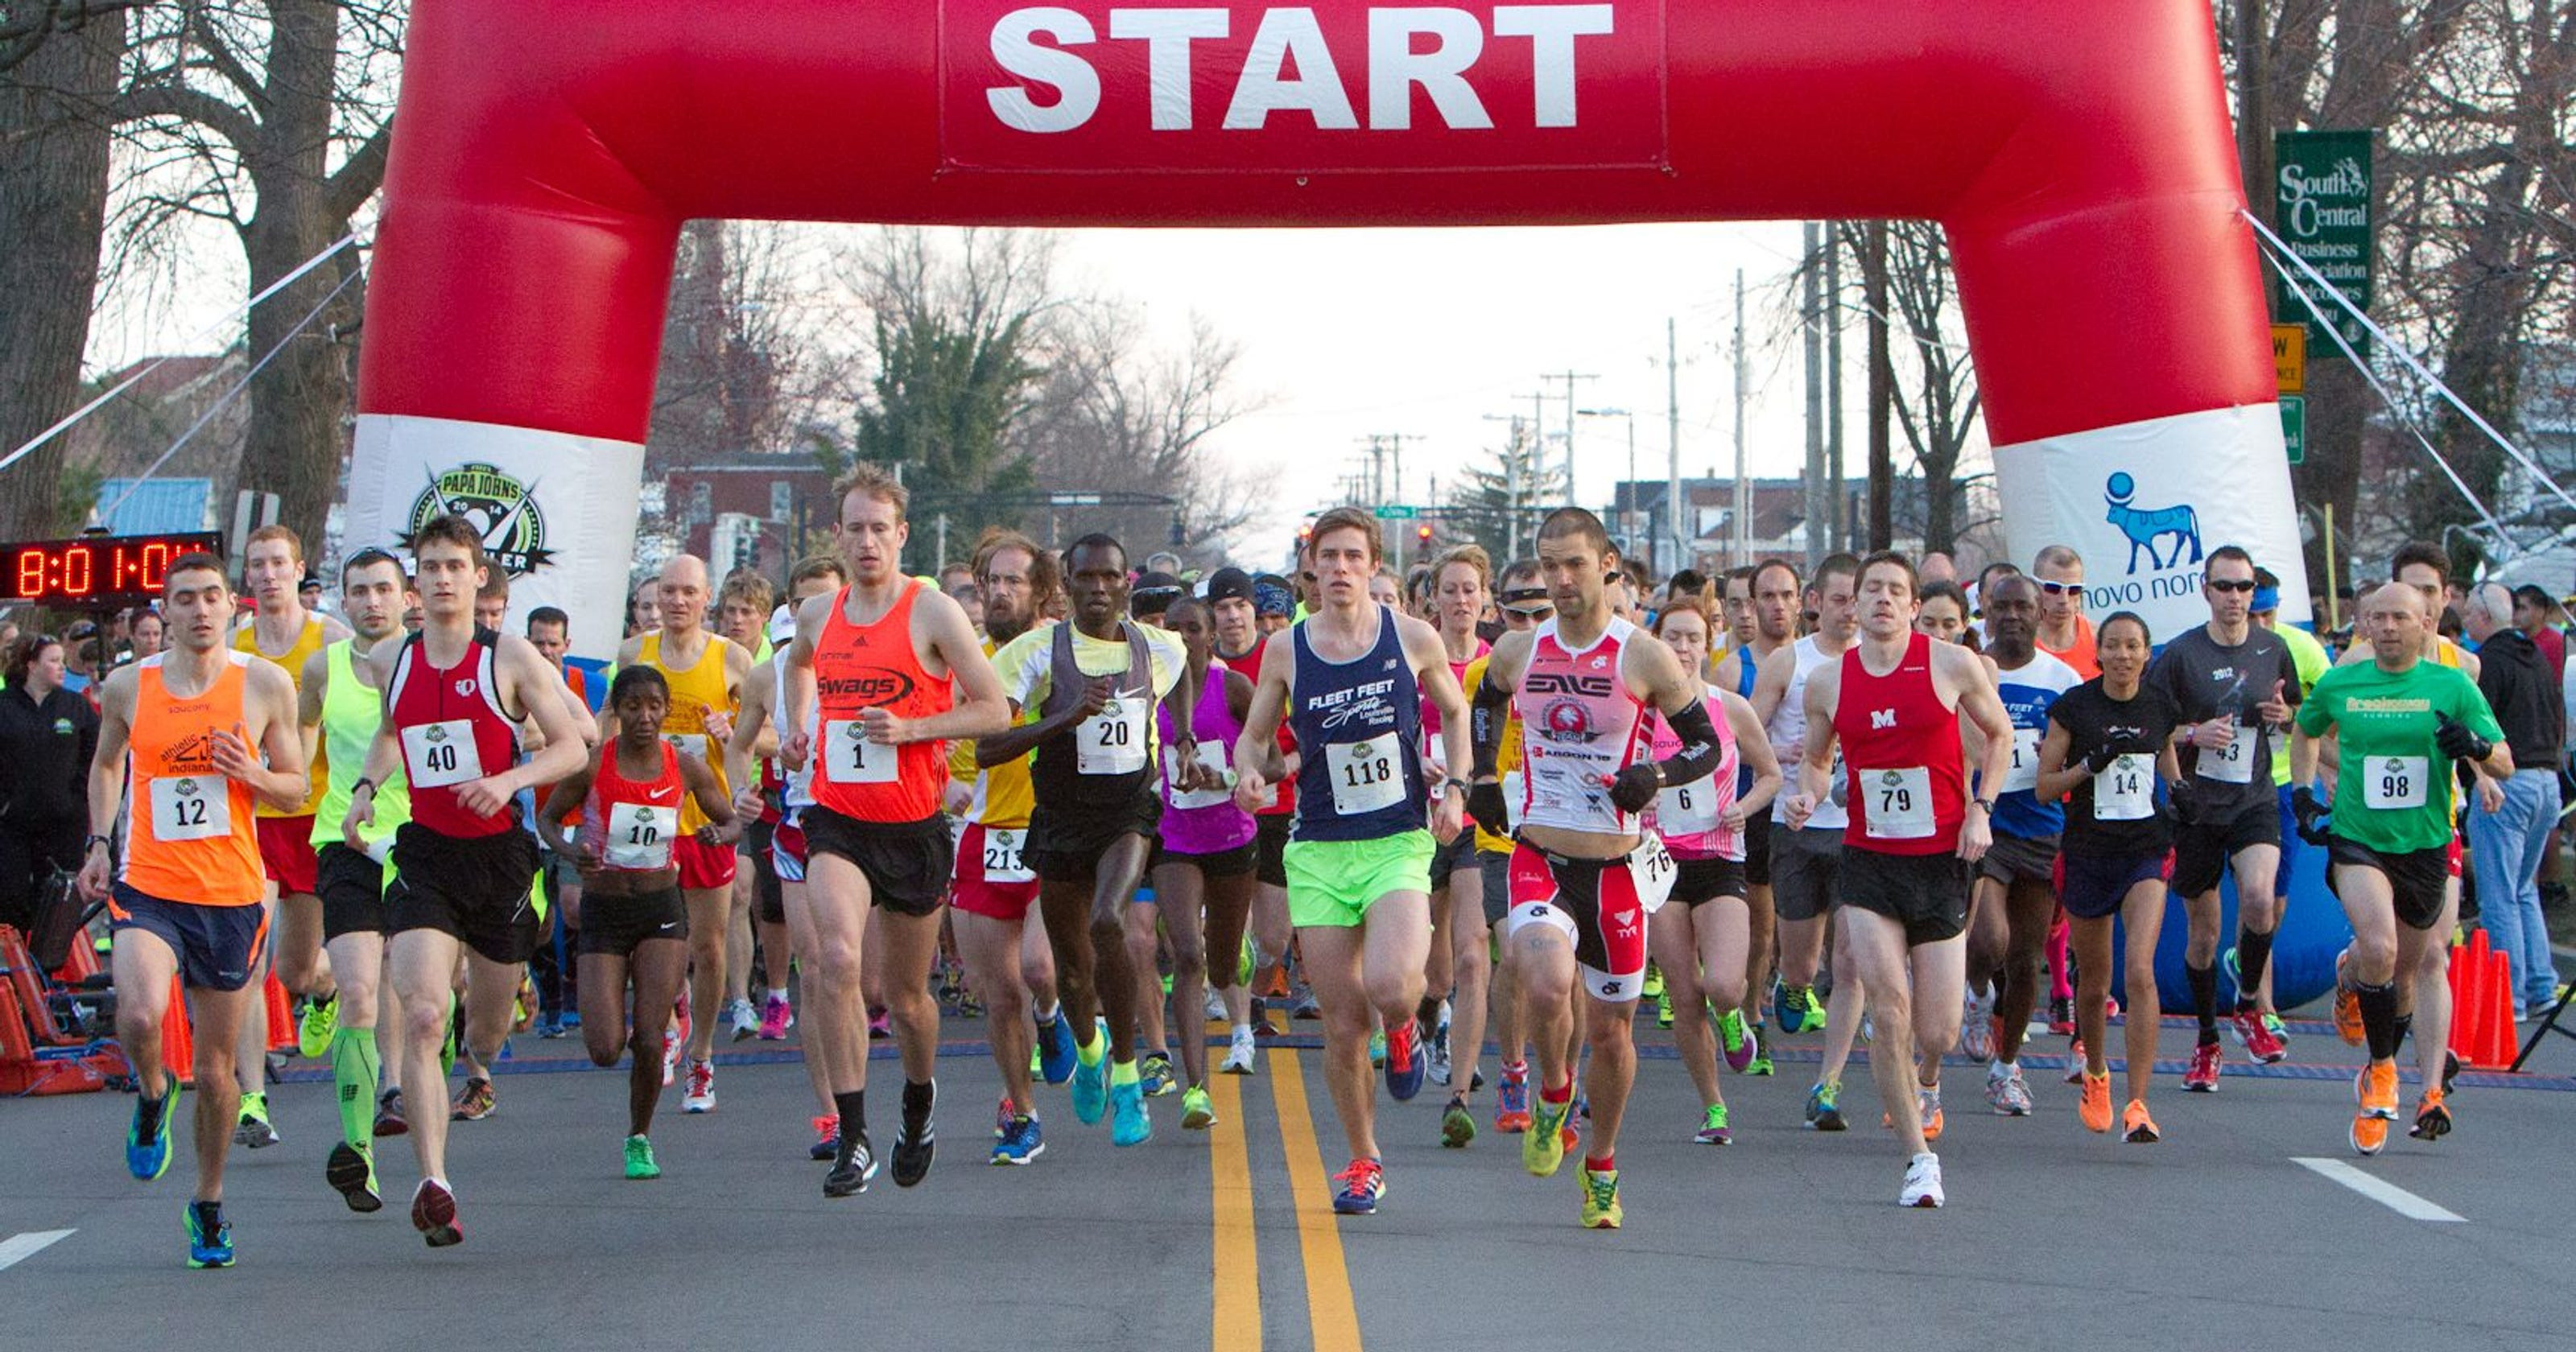 After 35 years, the Louisville Triple Crown of Running race series has been cancelled